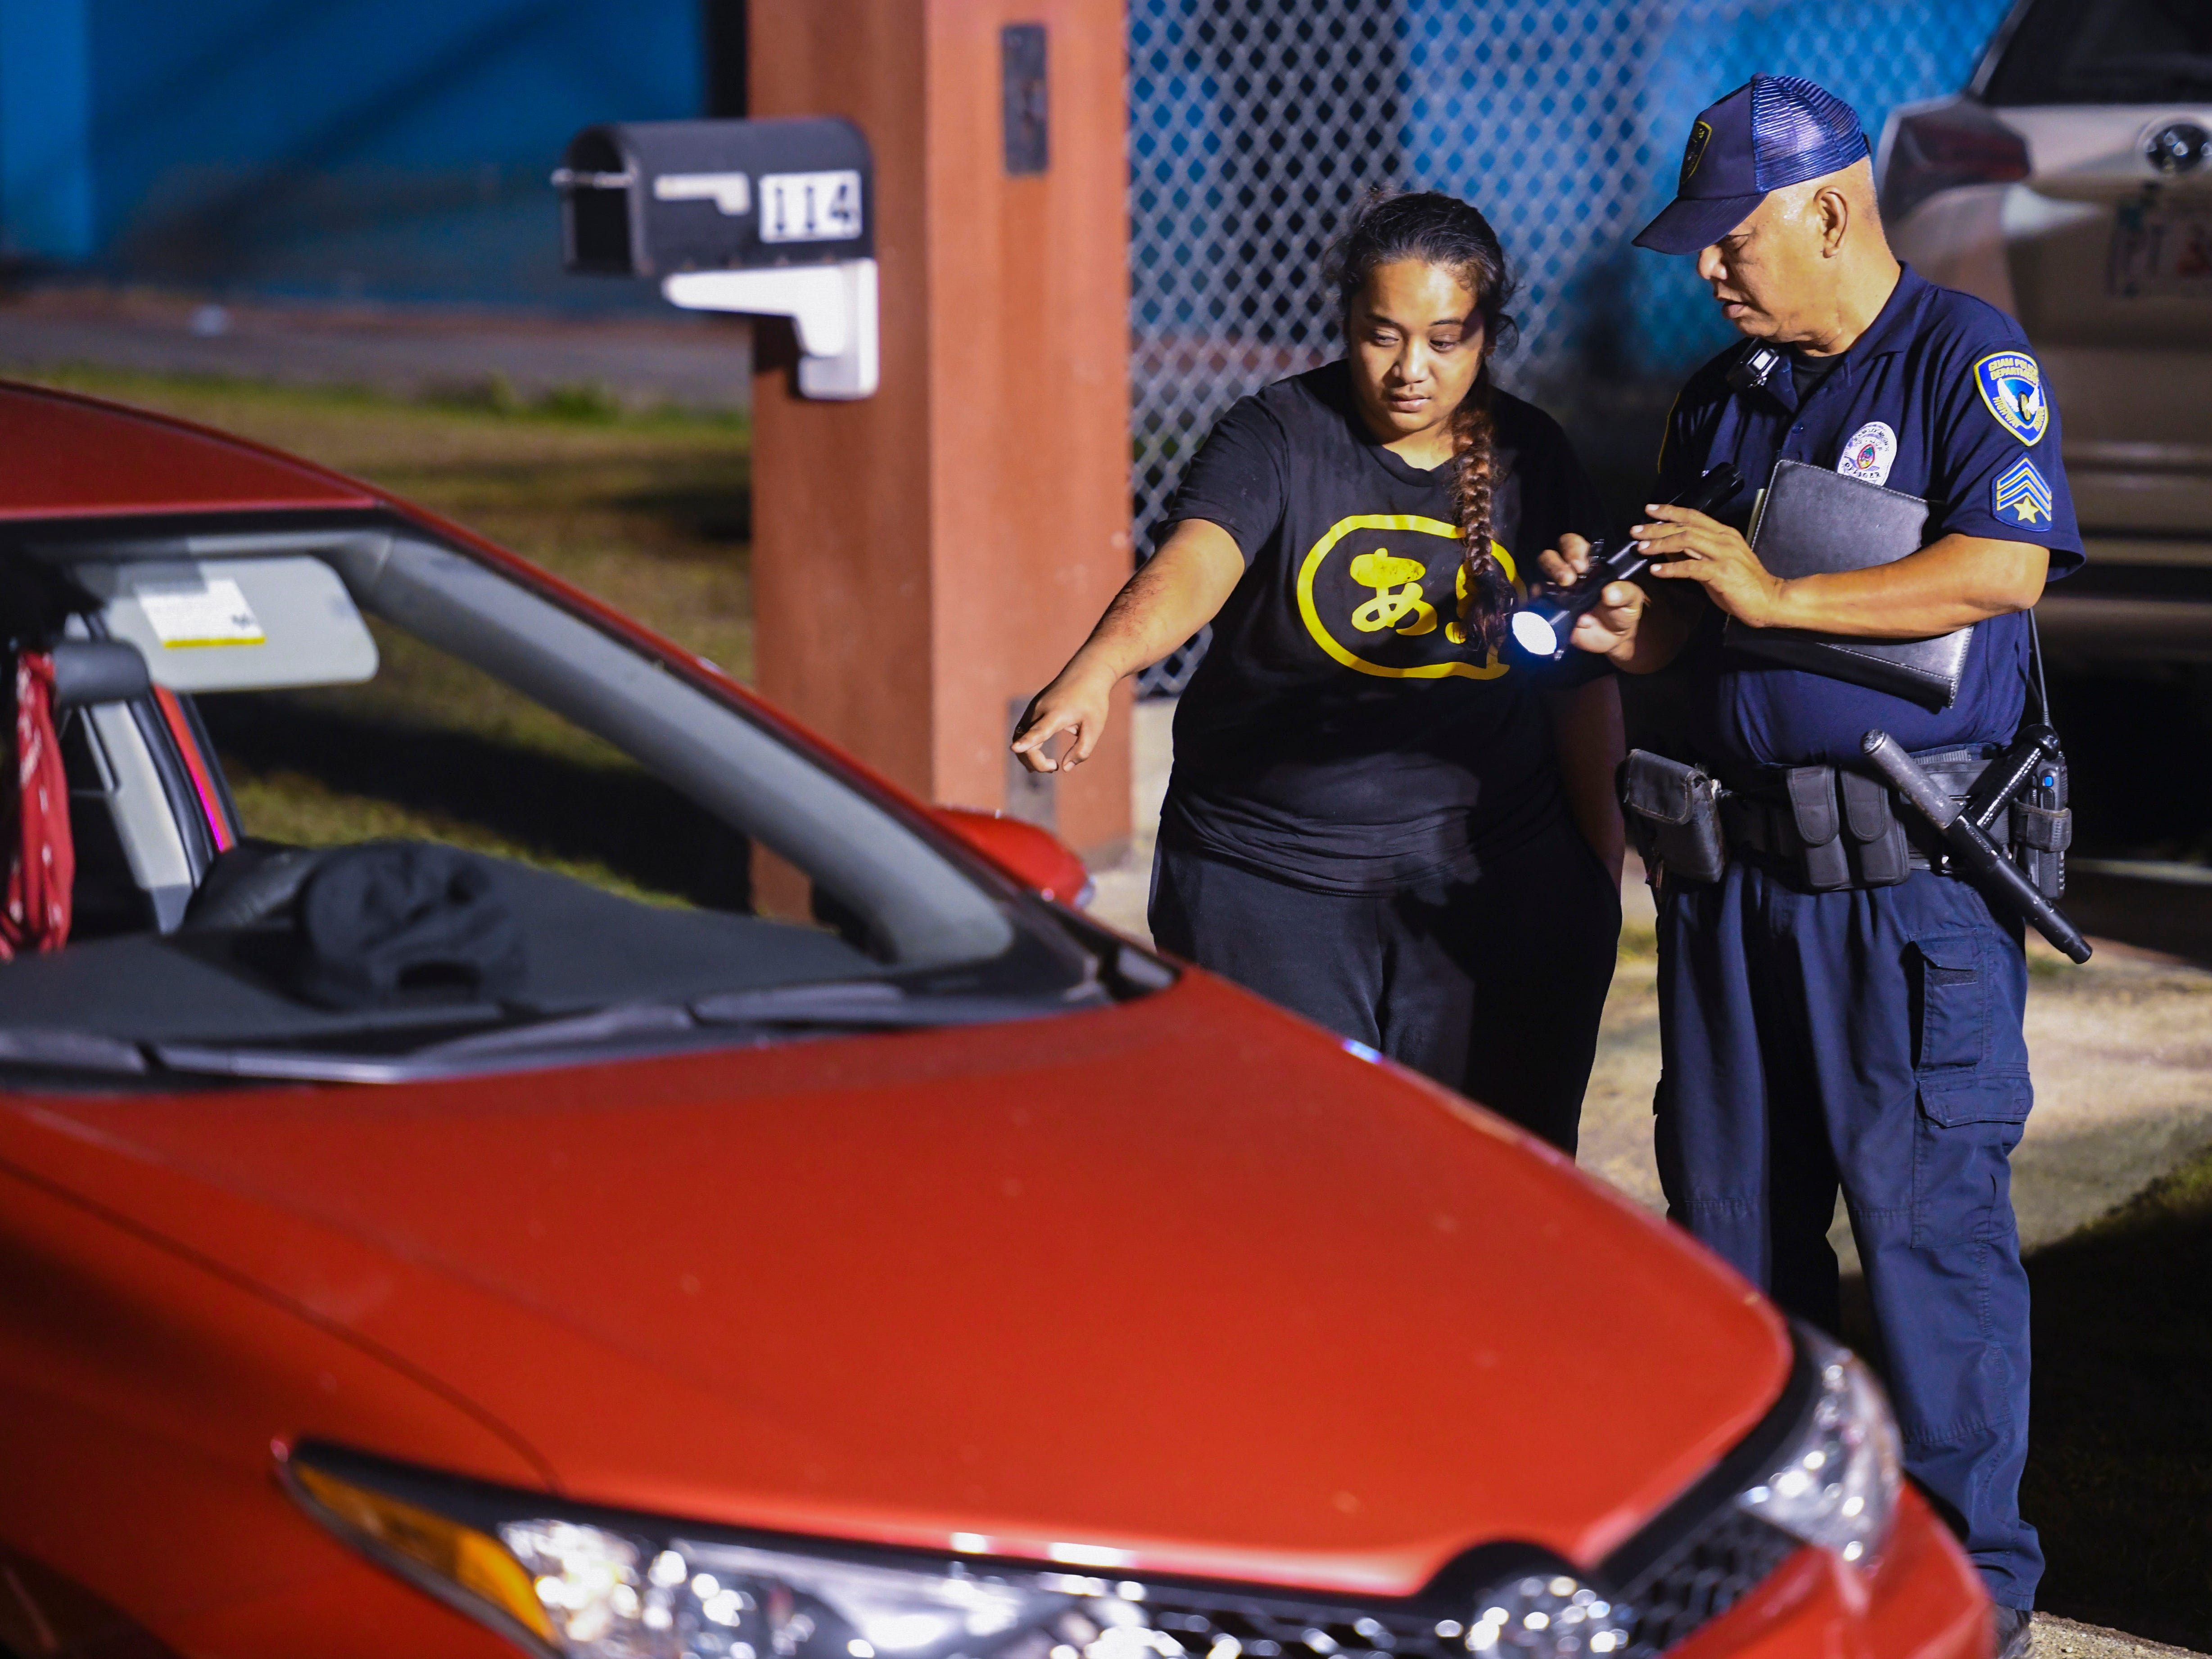 Vehicle operator Ewily Risa, left, assists a Guam Police Department officer during an investigation of a fatal auto-pedestrian incident in Dededo on the evening of Wednesday, May 7, 2019. Four-year-old Jericho Zion David, died after being struck in front of his family's home.